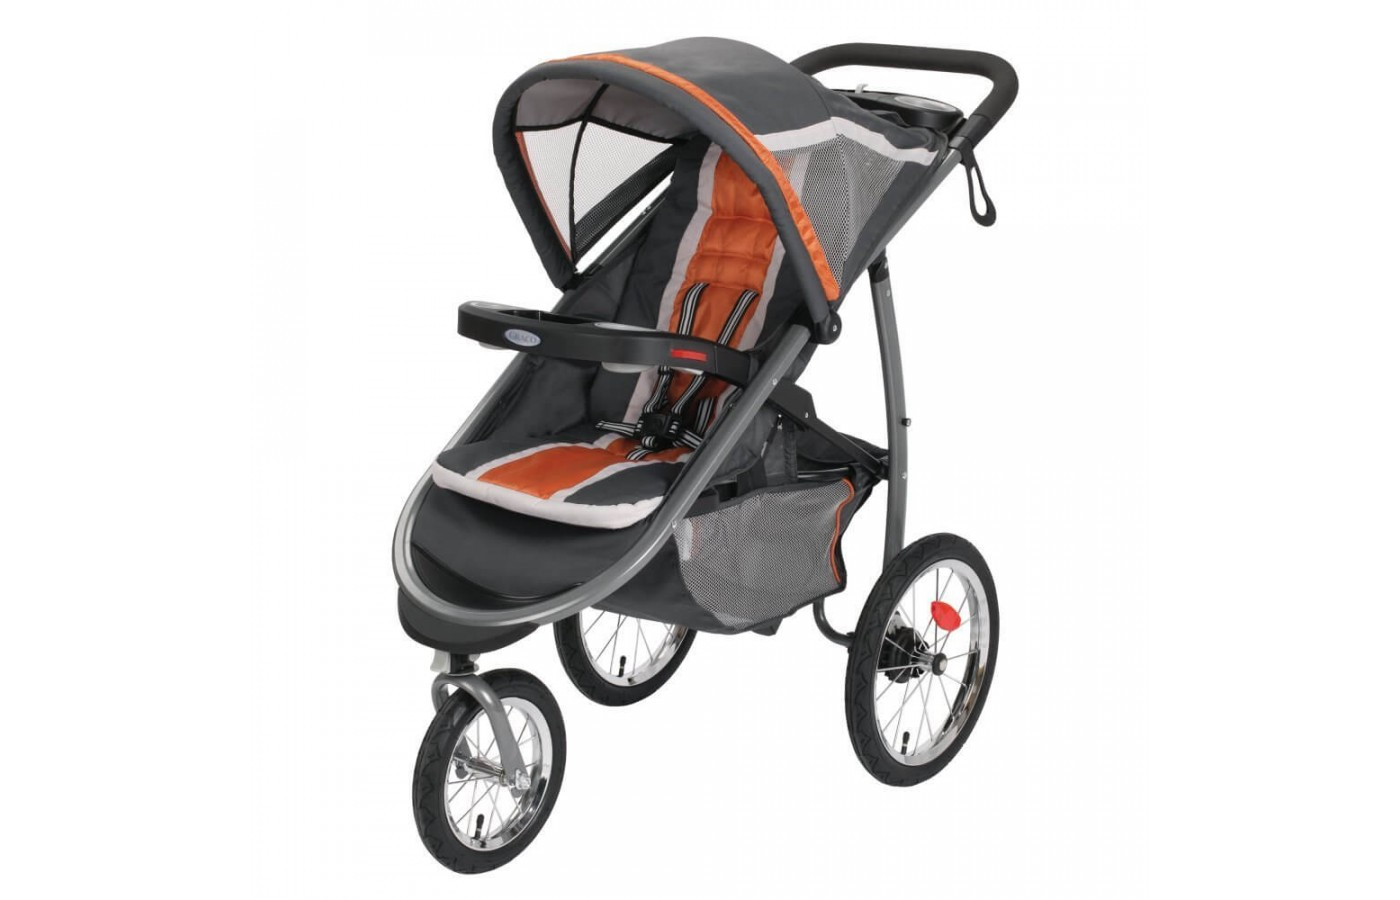 Graco FastAction Fold Jogger Click Connect Stroller is a lightweight, versatile jogging stroller that is great for jogging and day to day usage.